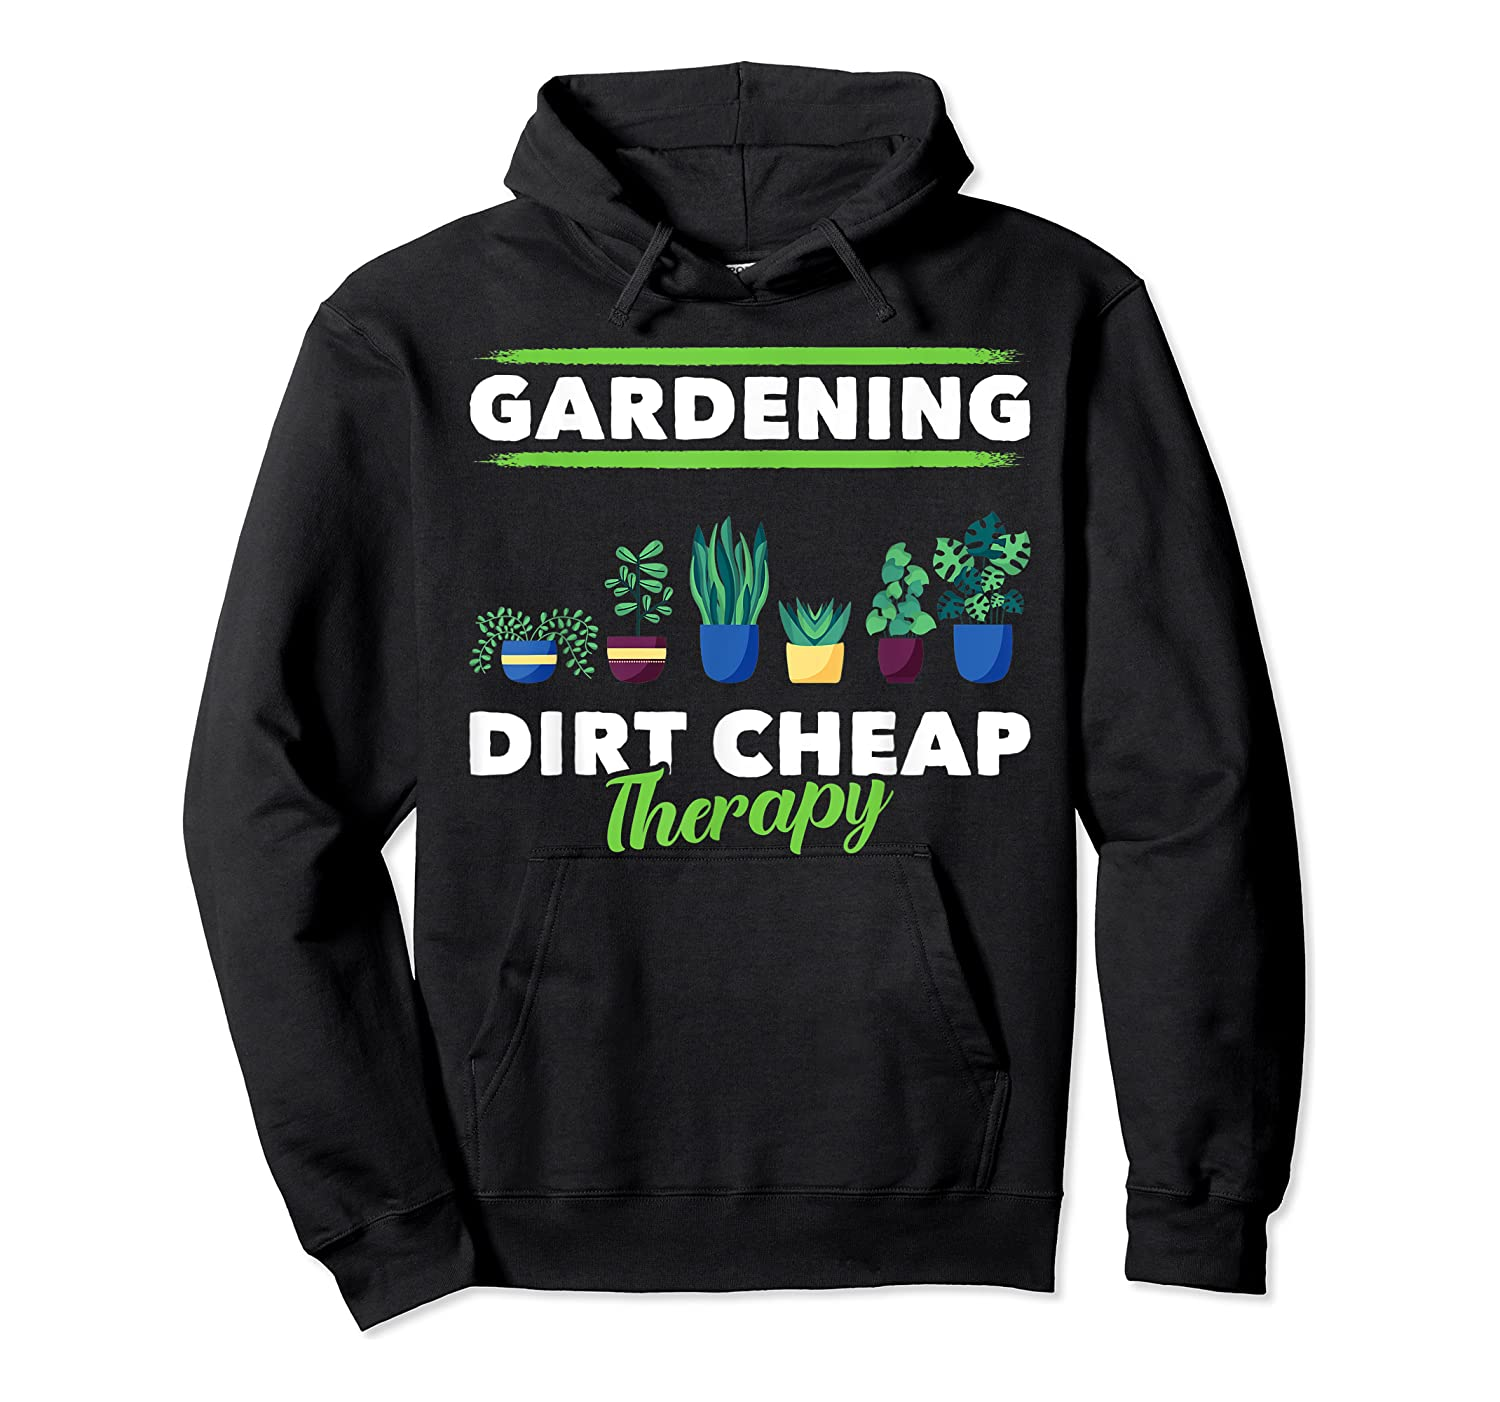 Dirt Cheap Therapy Gardening Shirts Unisex Pullover Hoodie